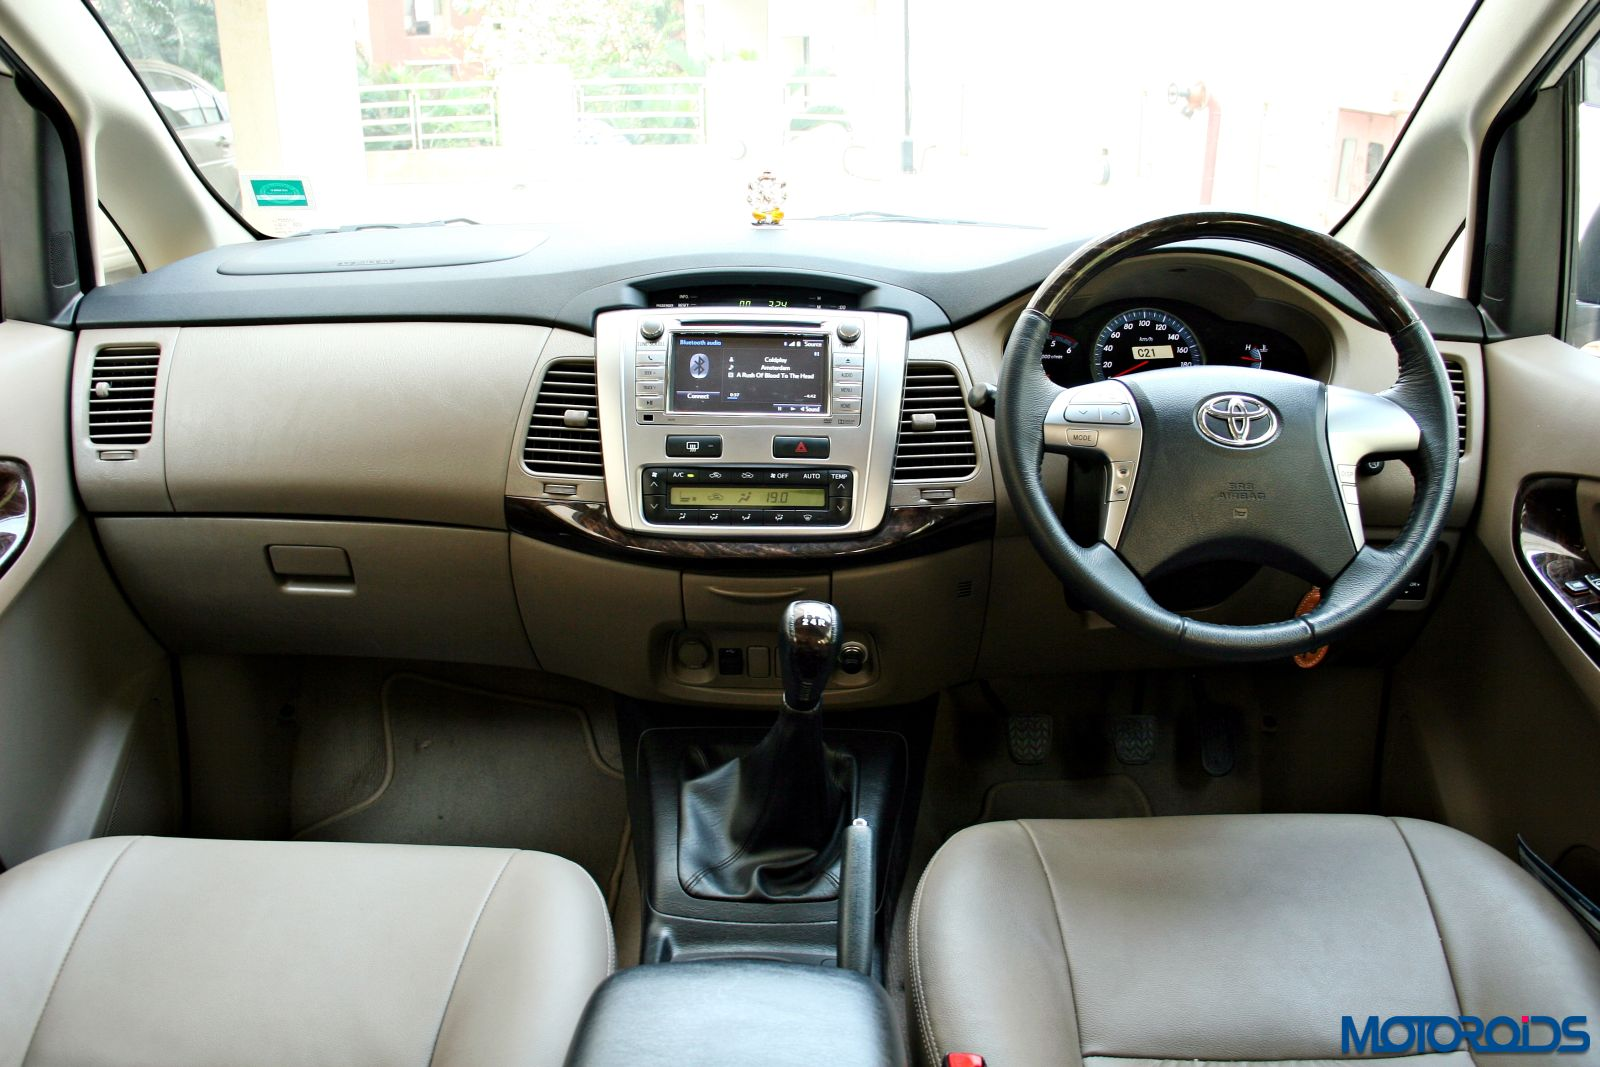 2015 Toyota Innova Car Interior Design